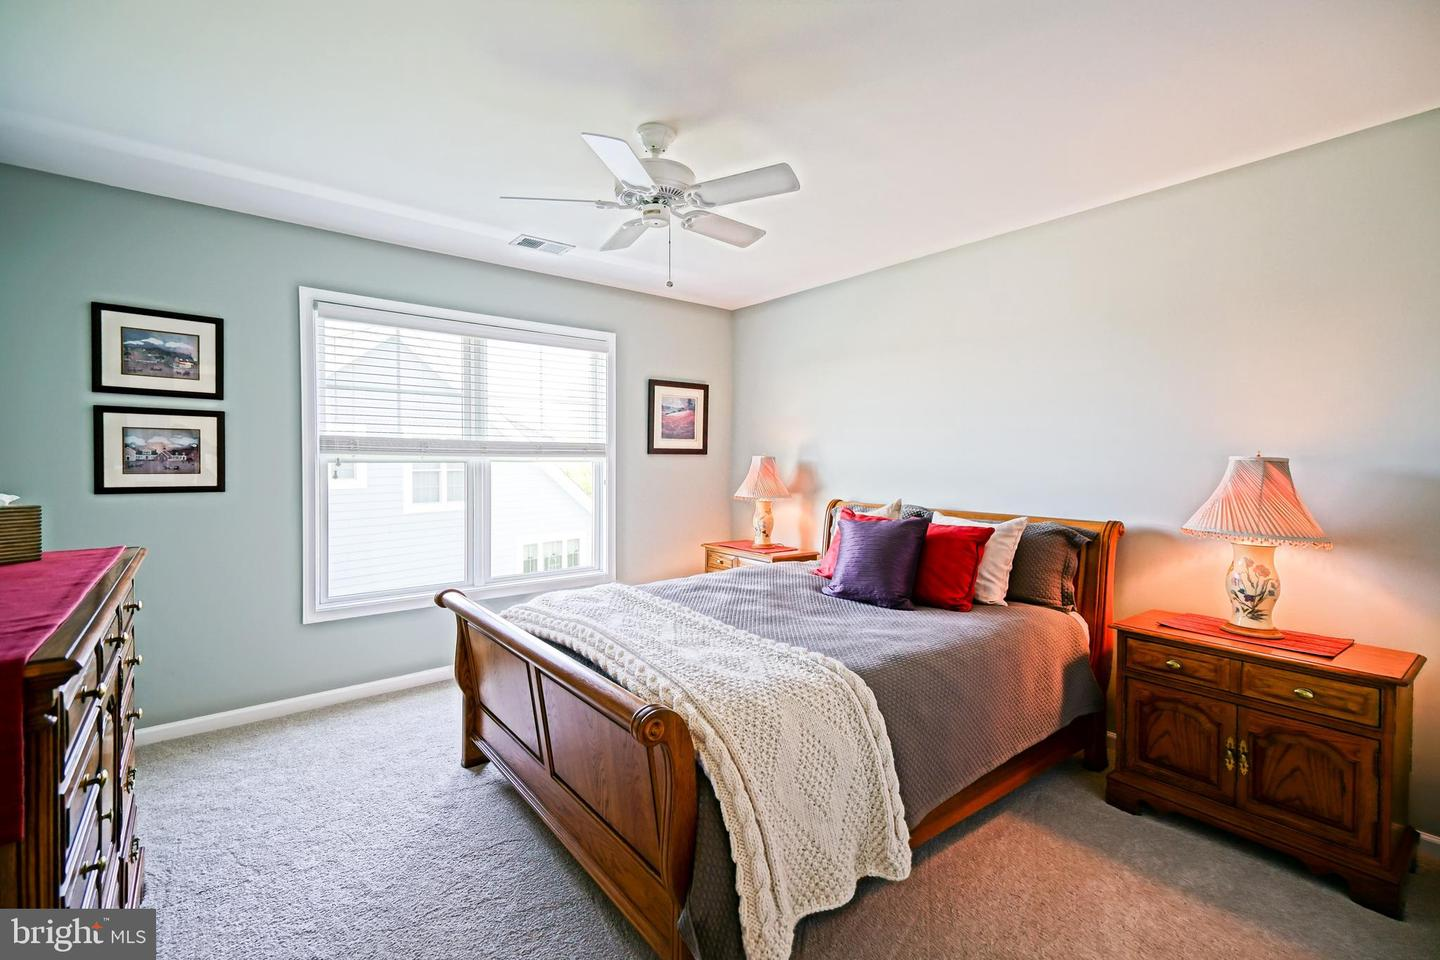 DESU139128-301667383895-2019-08-05-10-43-56 35222 Overfalls Dr N | Lewes, DE Real Estate For Sale | MLS# Desu139128  - Lee Ann Group